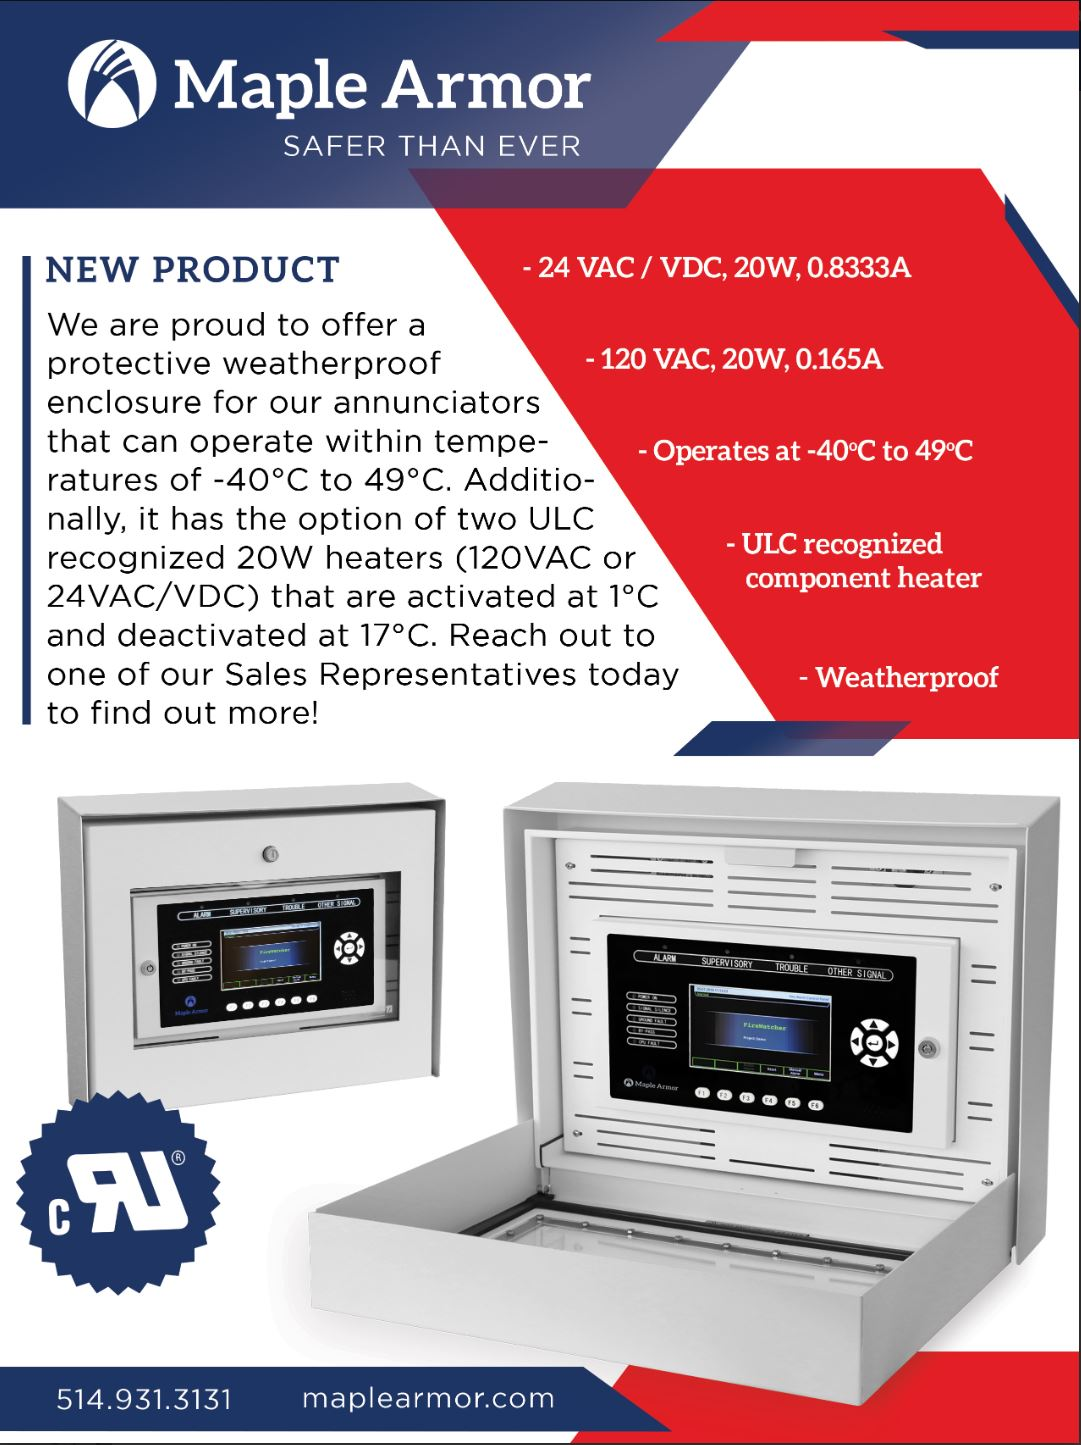 Protective weather proof enclosure for annunciators